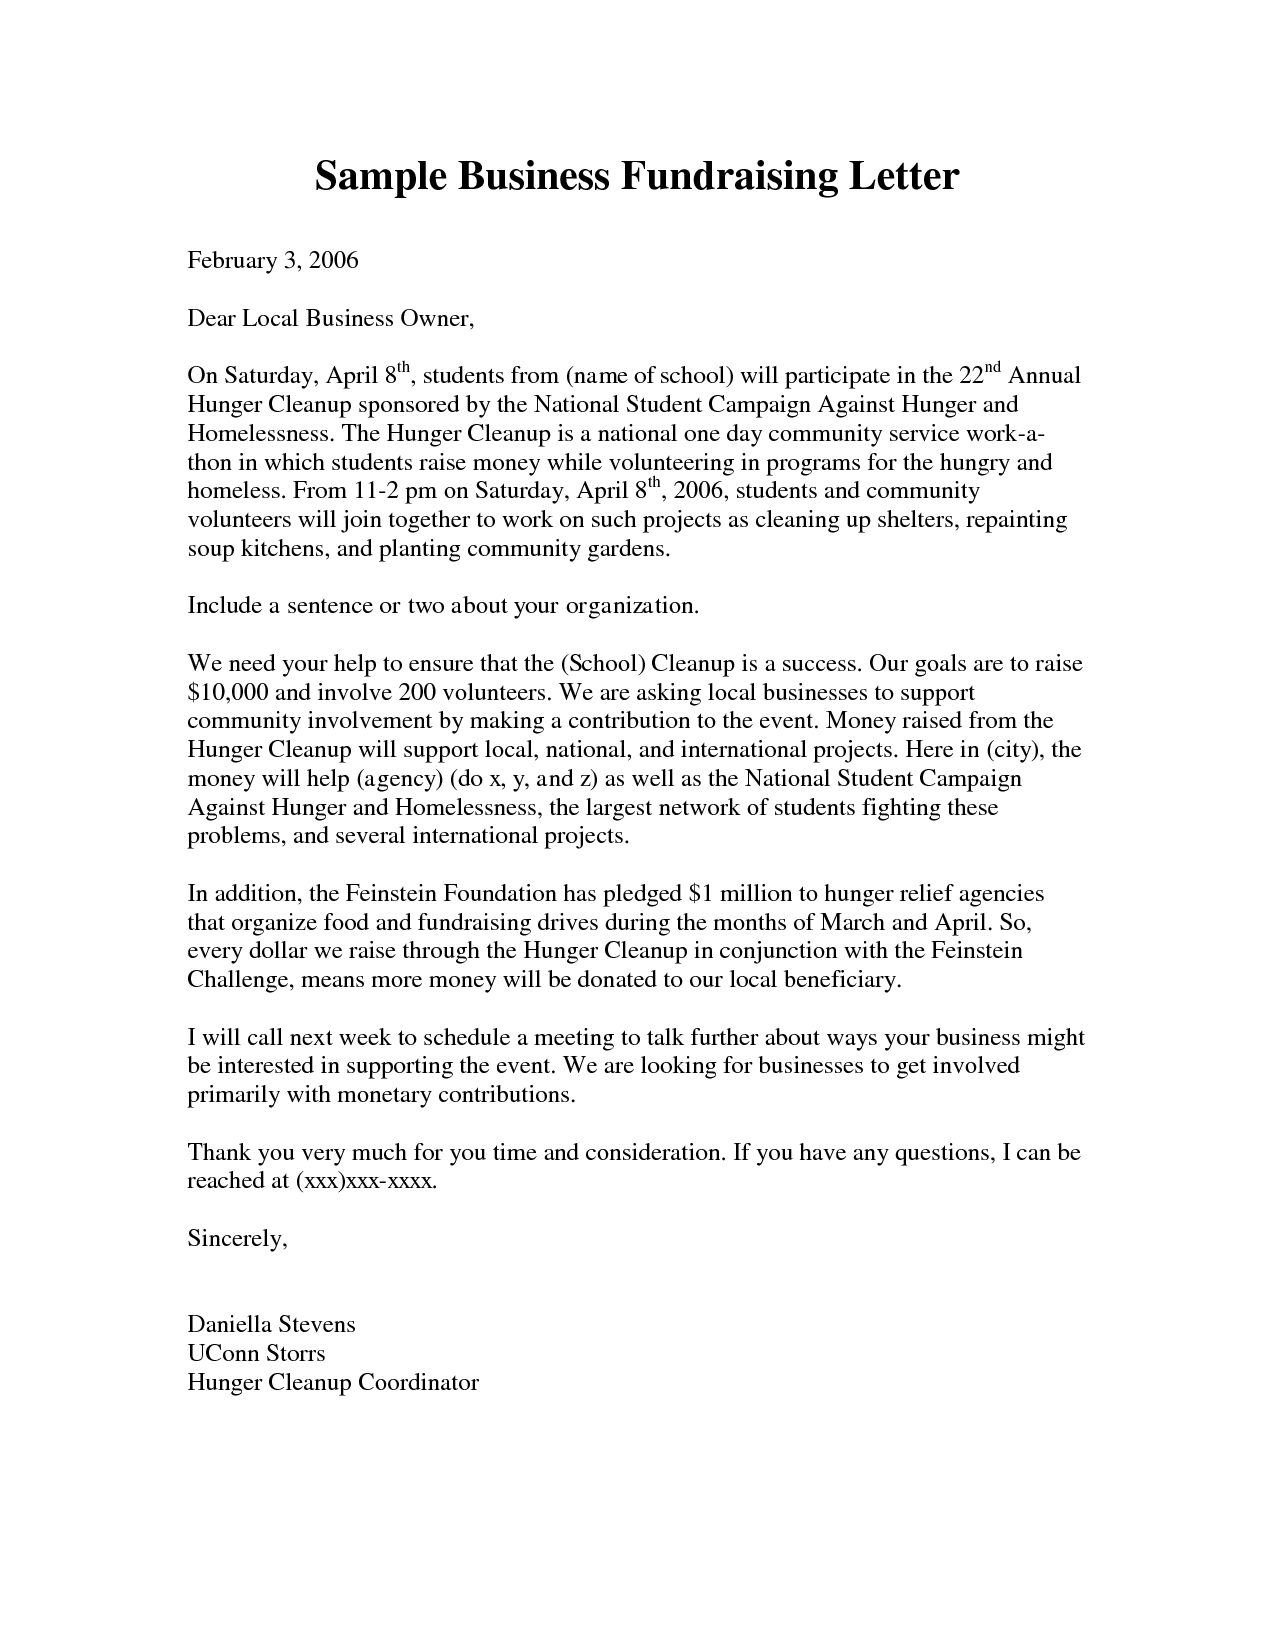 business fundraising letter sample fundraising letters for business fundraising letter fundraising letter is prepared by the charity foundations and welfare organization to raising the fund to the help of the